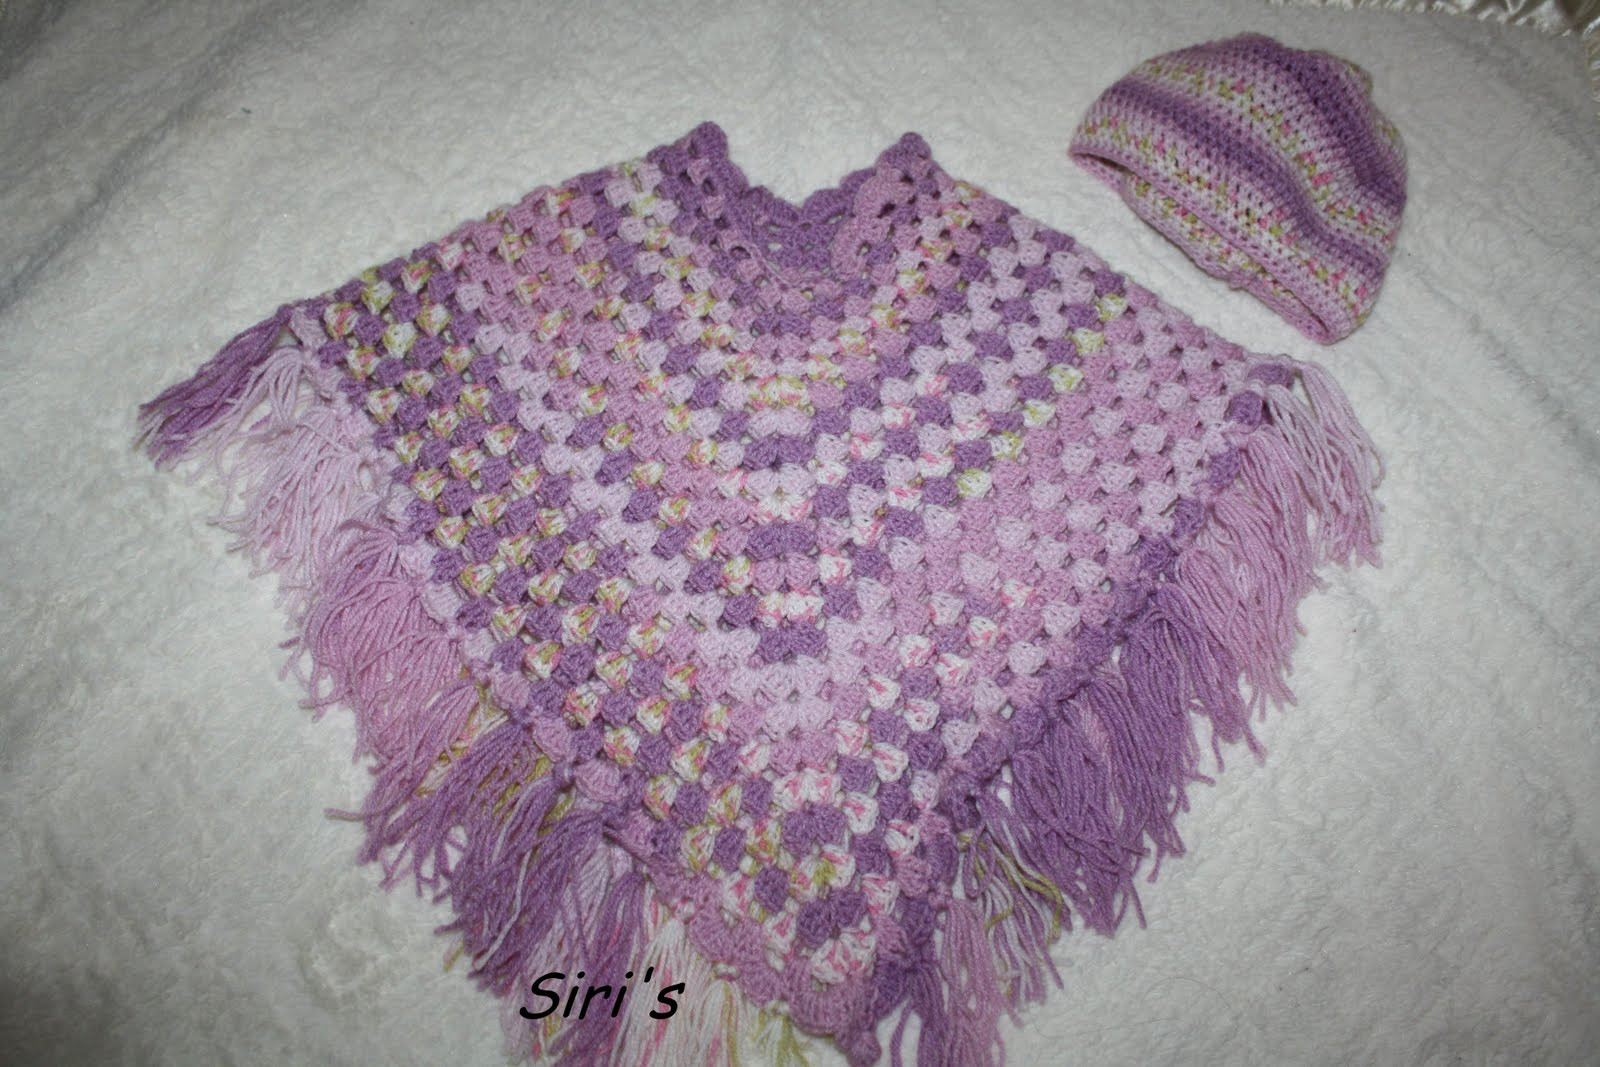 Crochet Poncho Patterns for Beginners Elegant Siri S Kitchen Crochet Baby Poncho with A Matching Hat Of Amazing 43 Models Crochet Poncho Patterns for Beginners